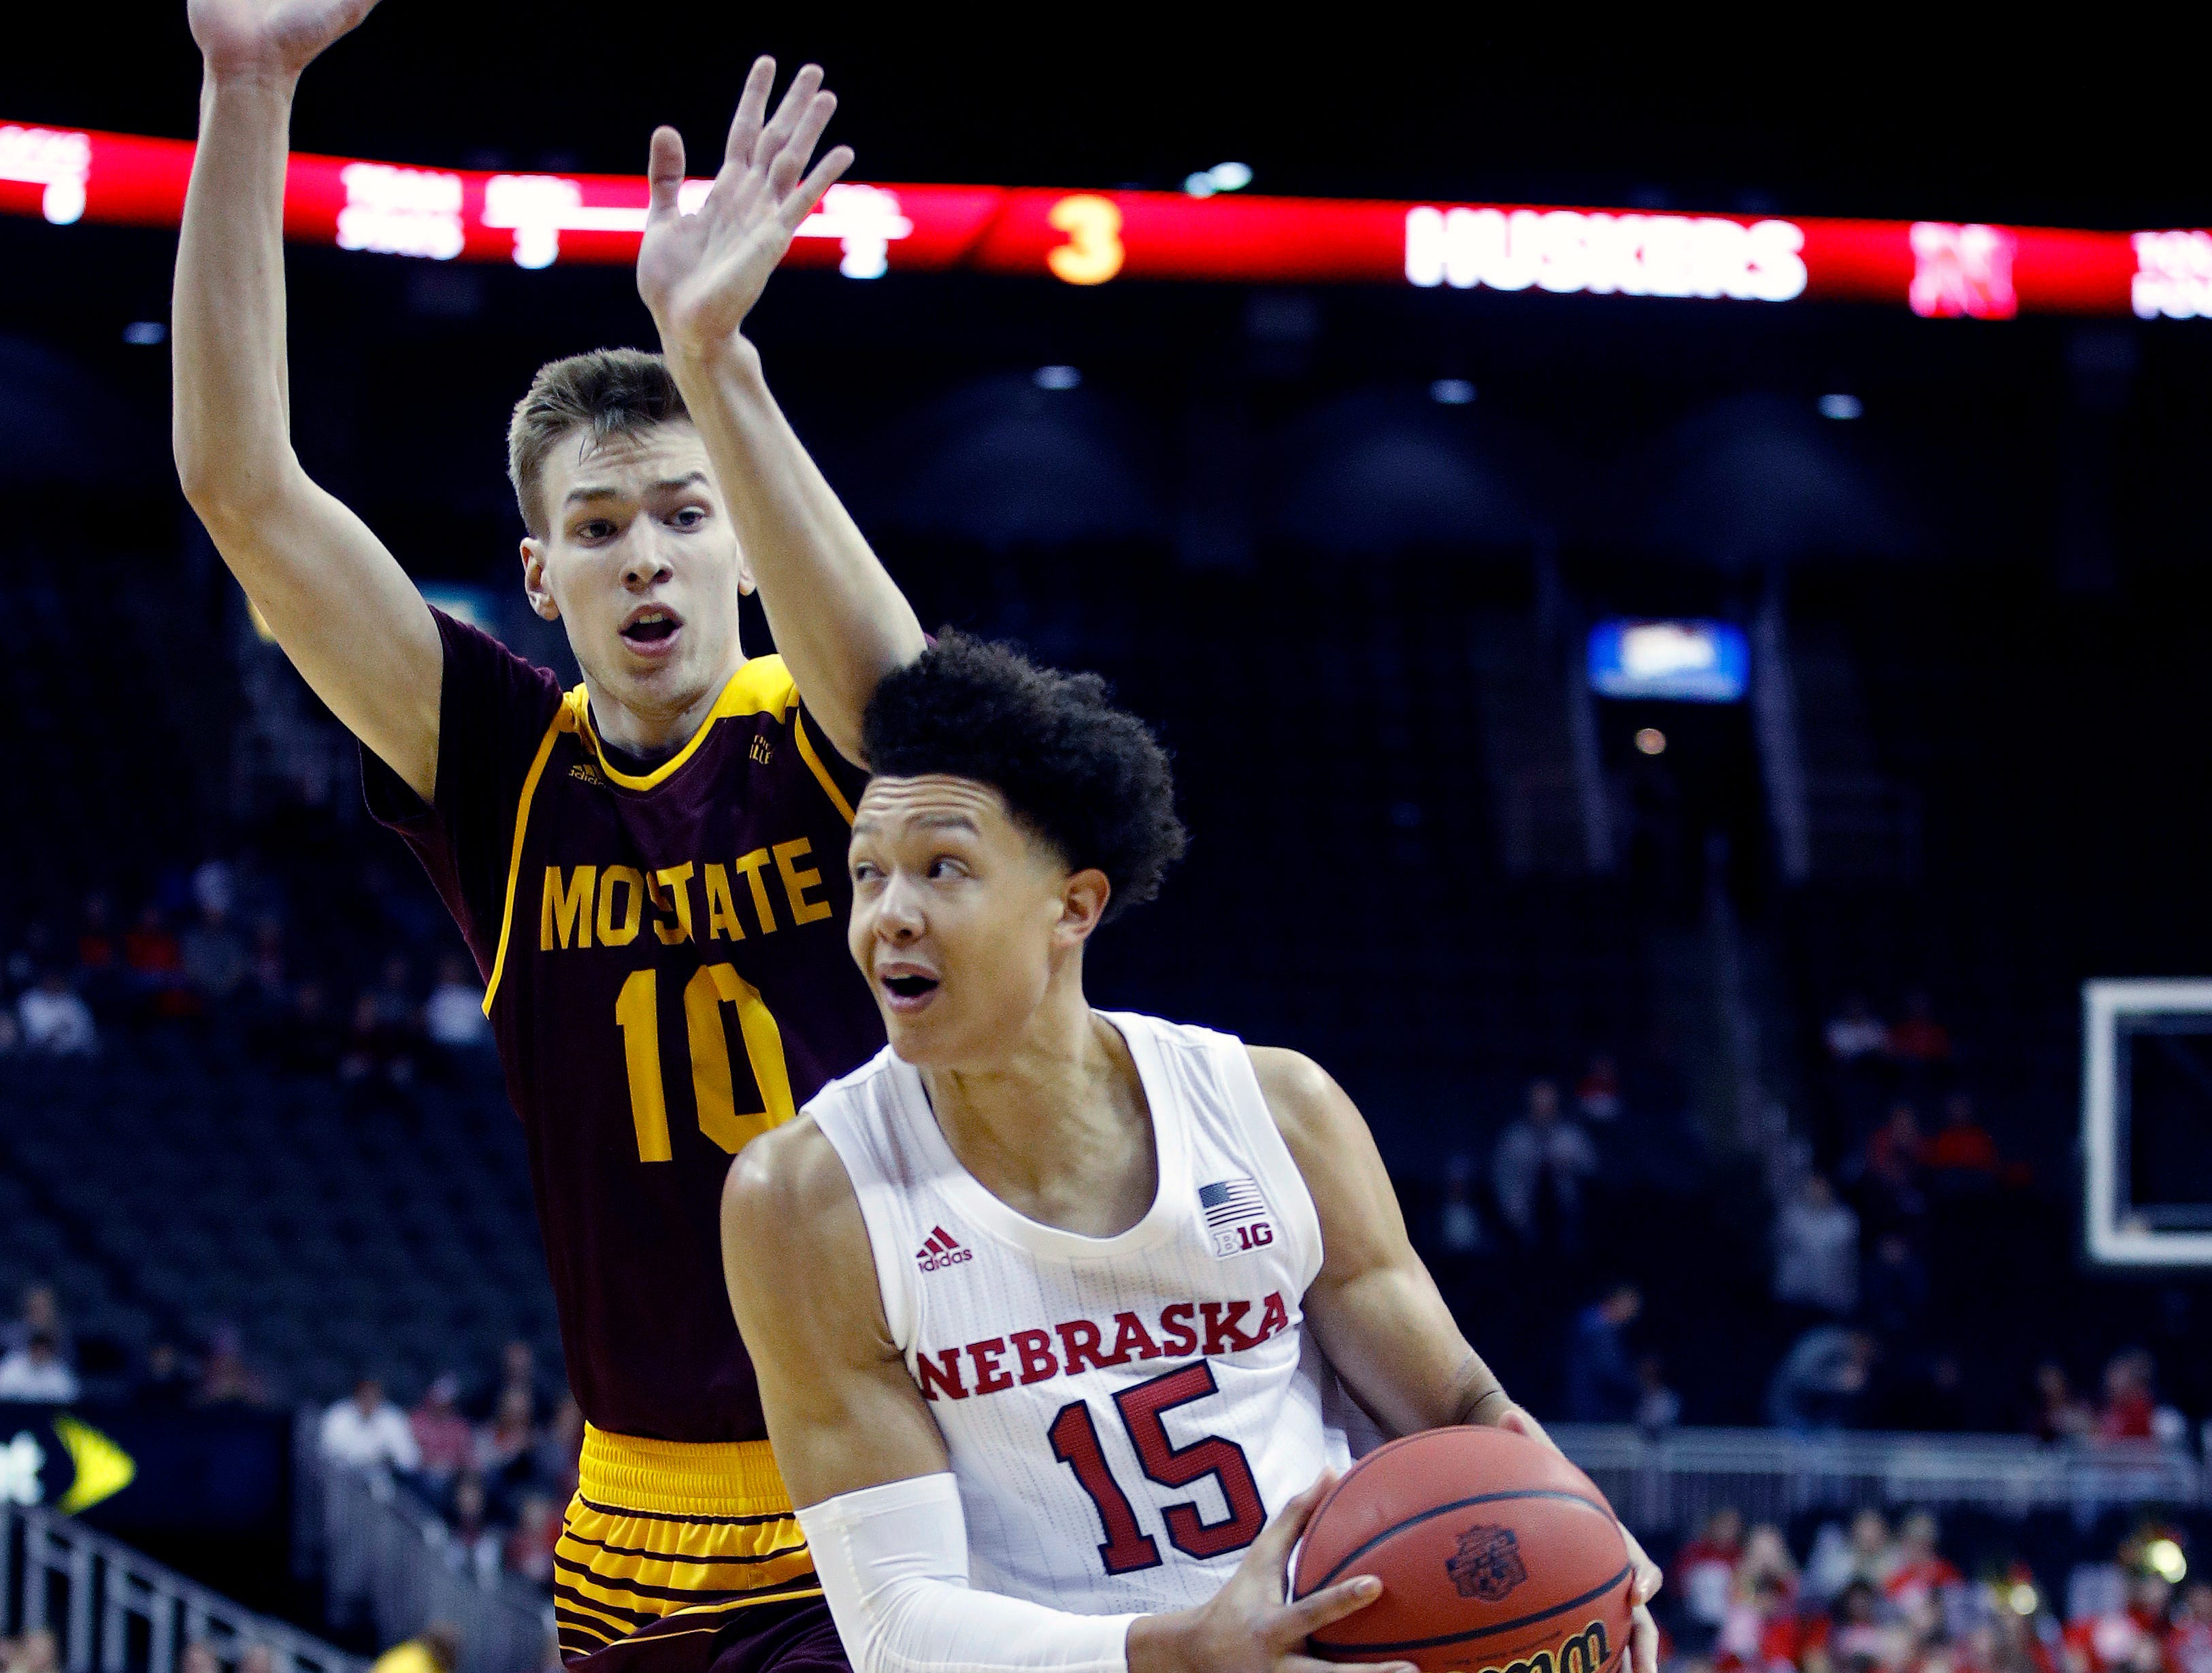 Nebraska's Isaiah Roby (15) goes up for a shot under pressure from Missouri State's Szymon Wojcik (10) during the first half of an NCAA college basketball game Monday, Nov. 19, 2018, in Kansas City, Mo. (AP Photo/Charlie Riedel)